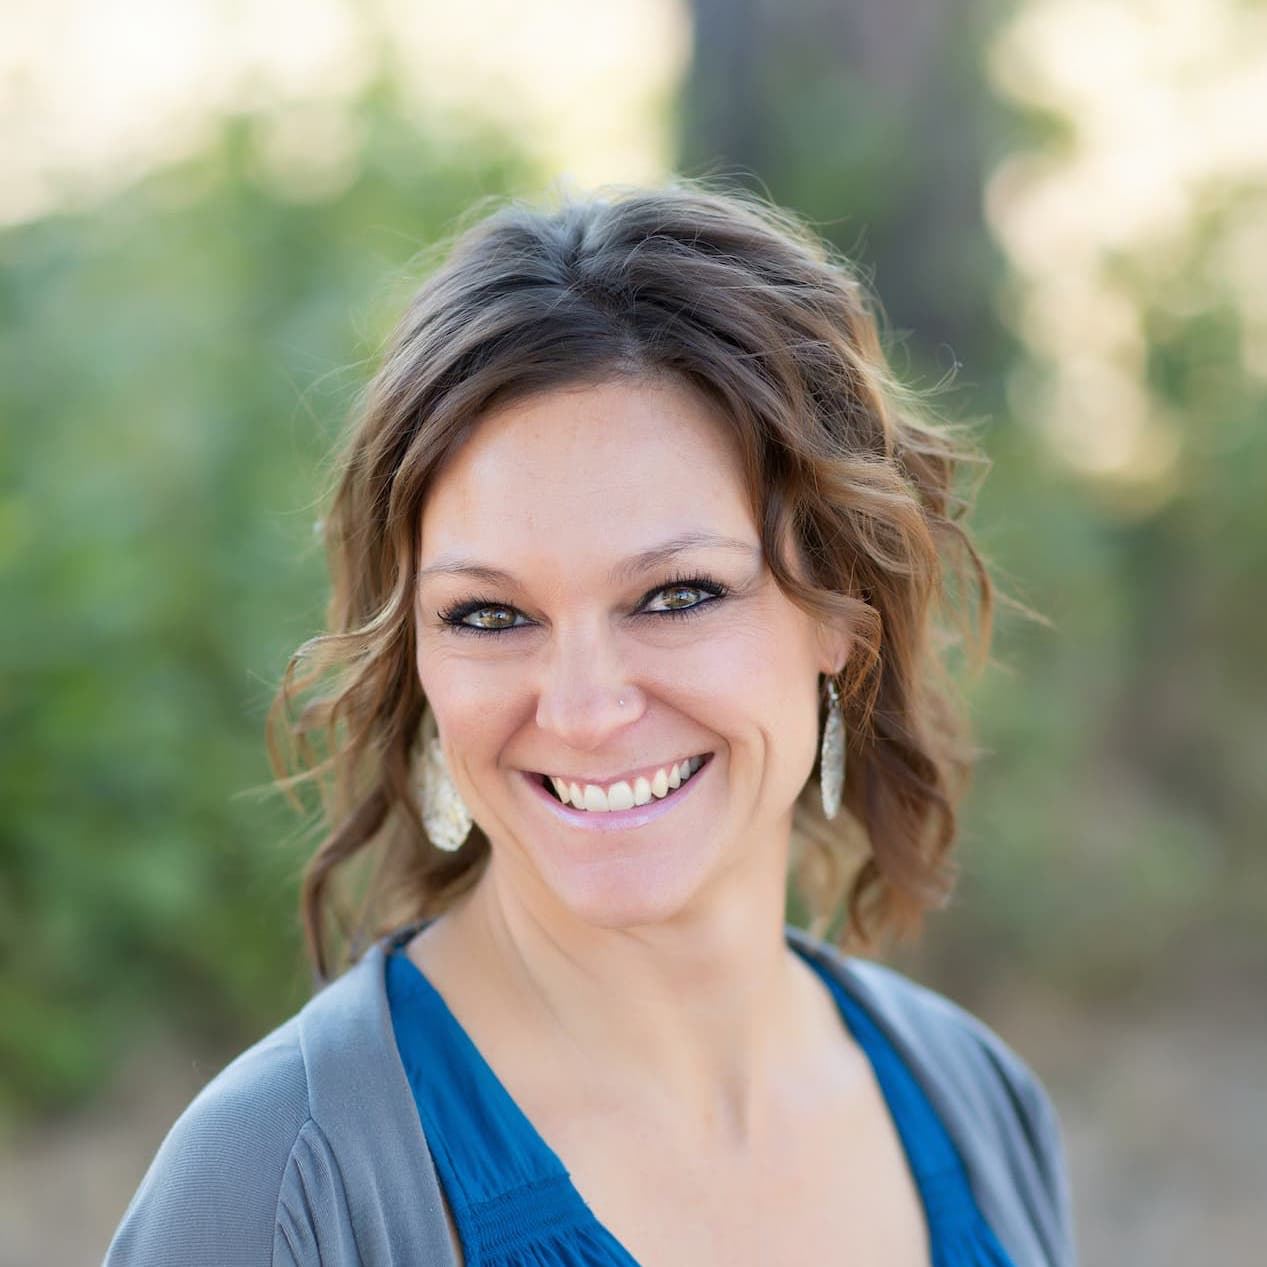 meet nichole - financial coordinator of johnson dental